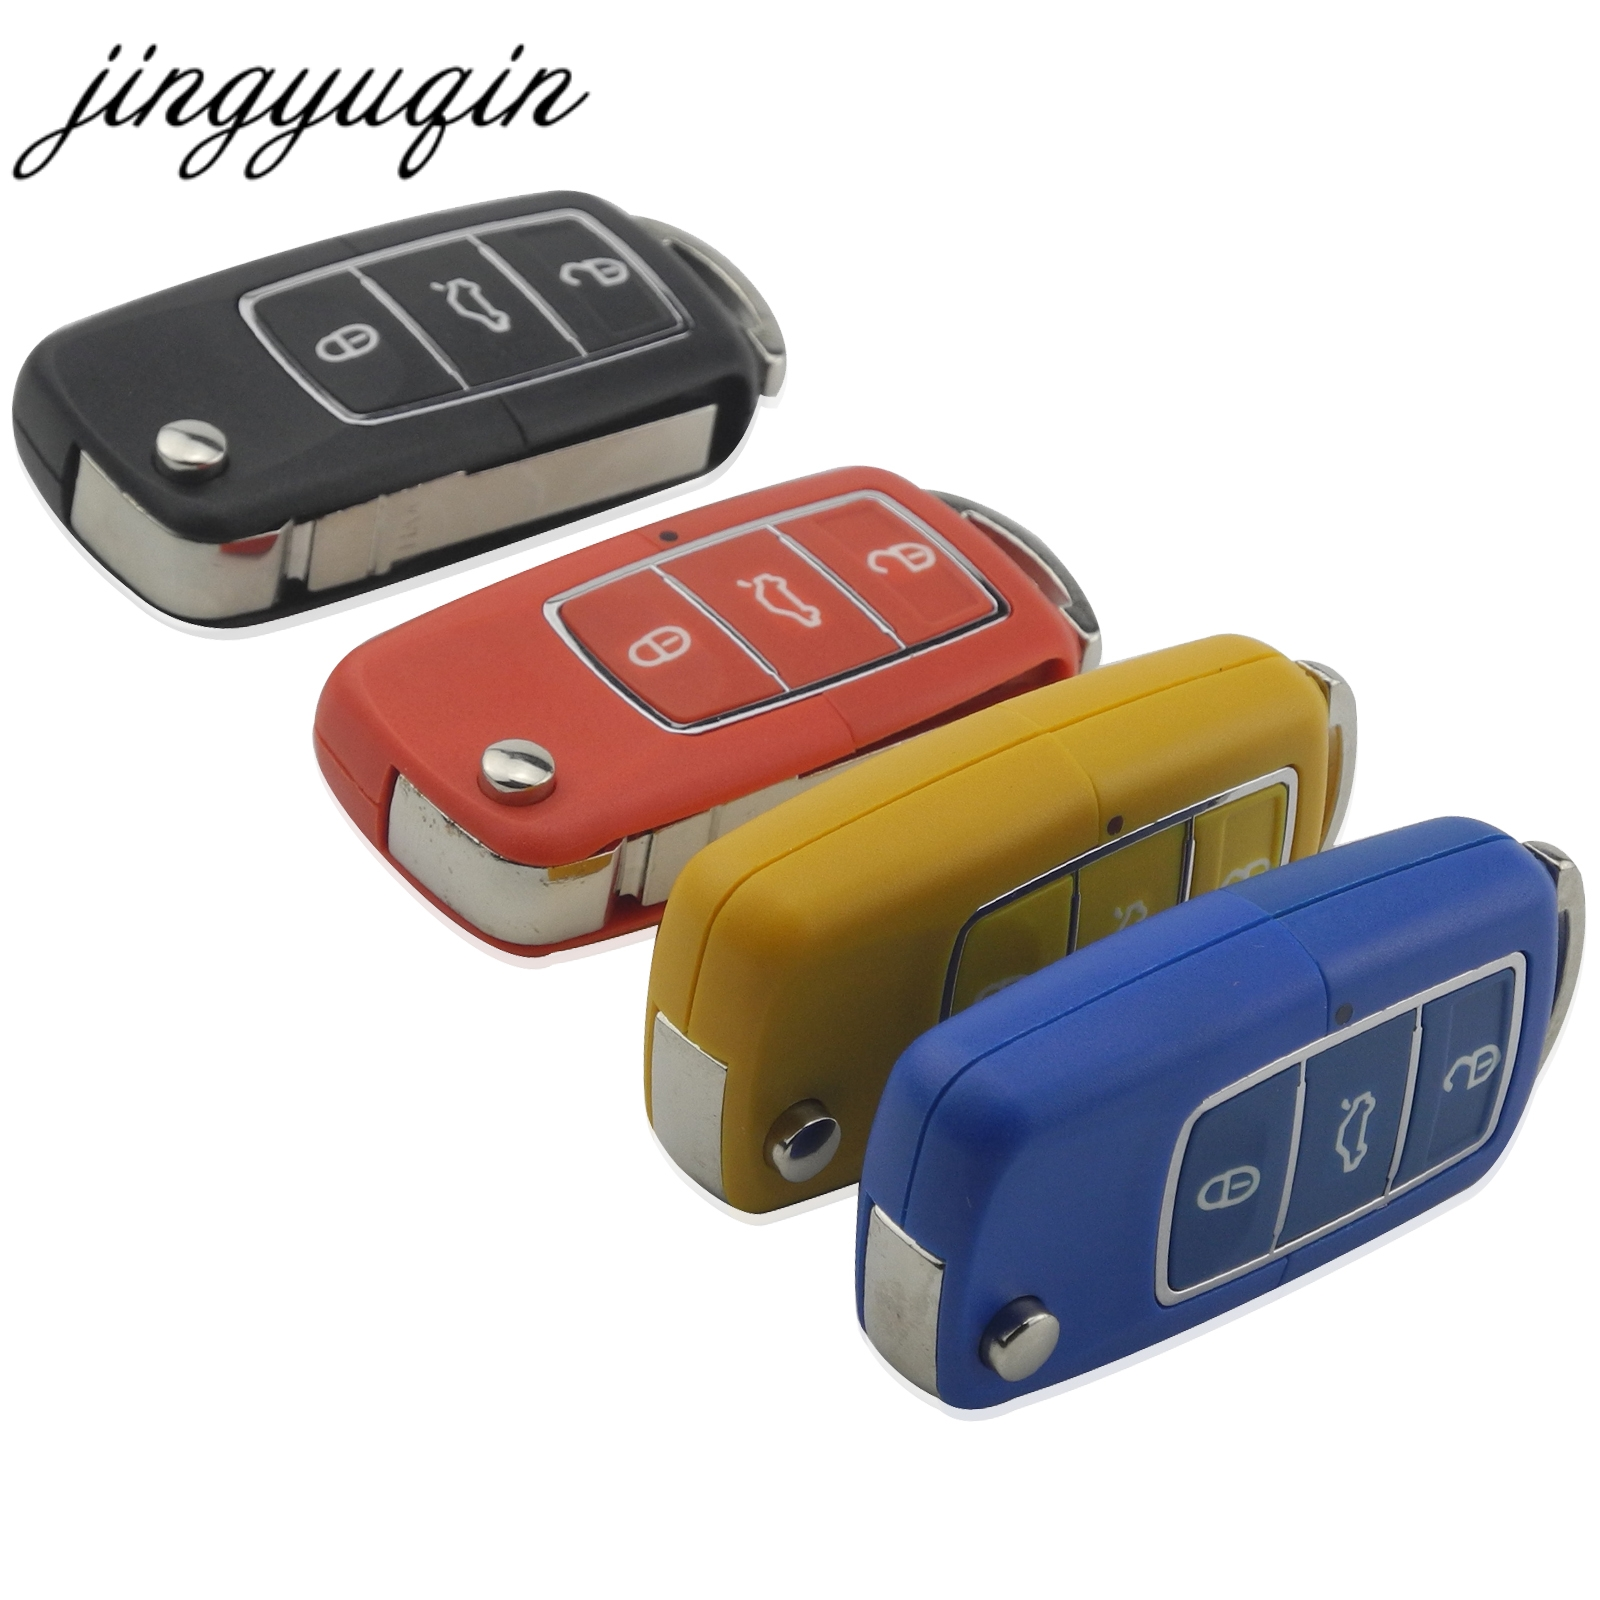 все цены на jingyuqin Flip Folding 3 Buttons Remote Car Key Shell Fob Case For Volkswagen VW Jetta Golf Passat Beetle Polo Bora